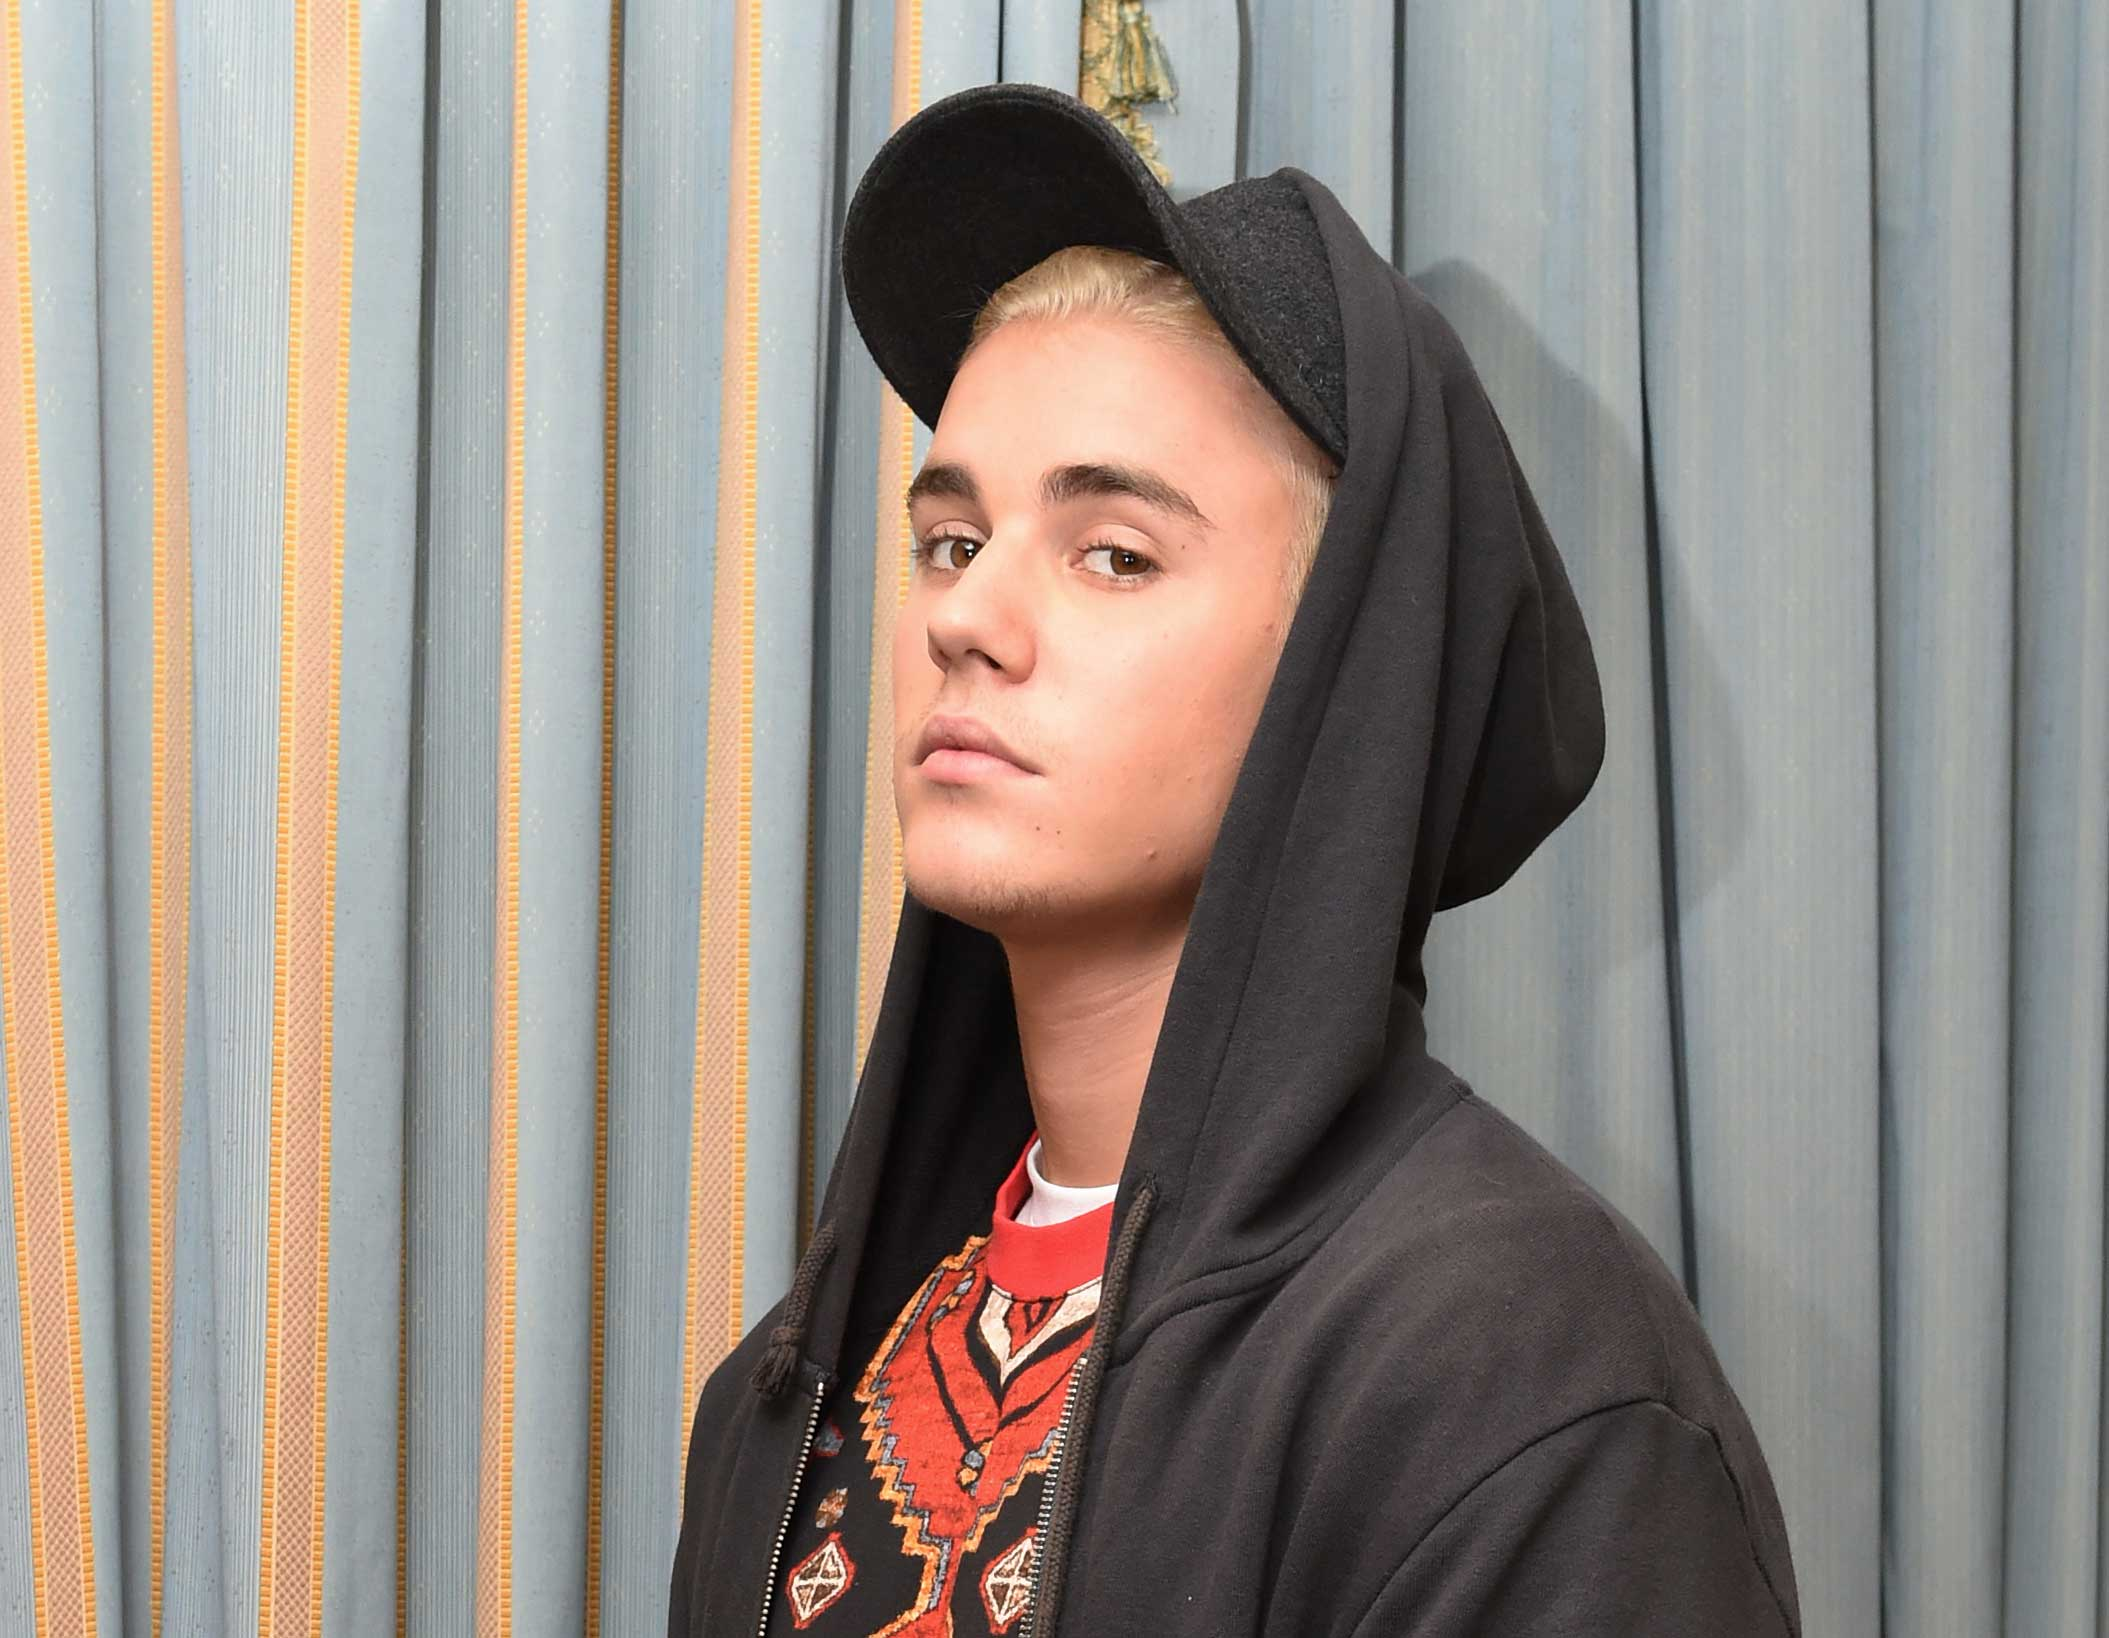 Canadian singer Justin Bieber poses during a press event at the Ritz Carlton Hotel in Berlin, Sept. 15, 2015.